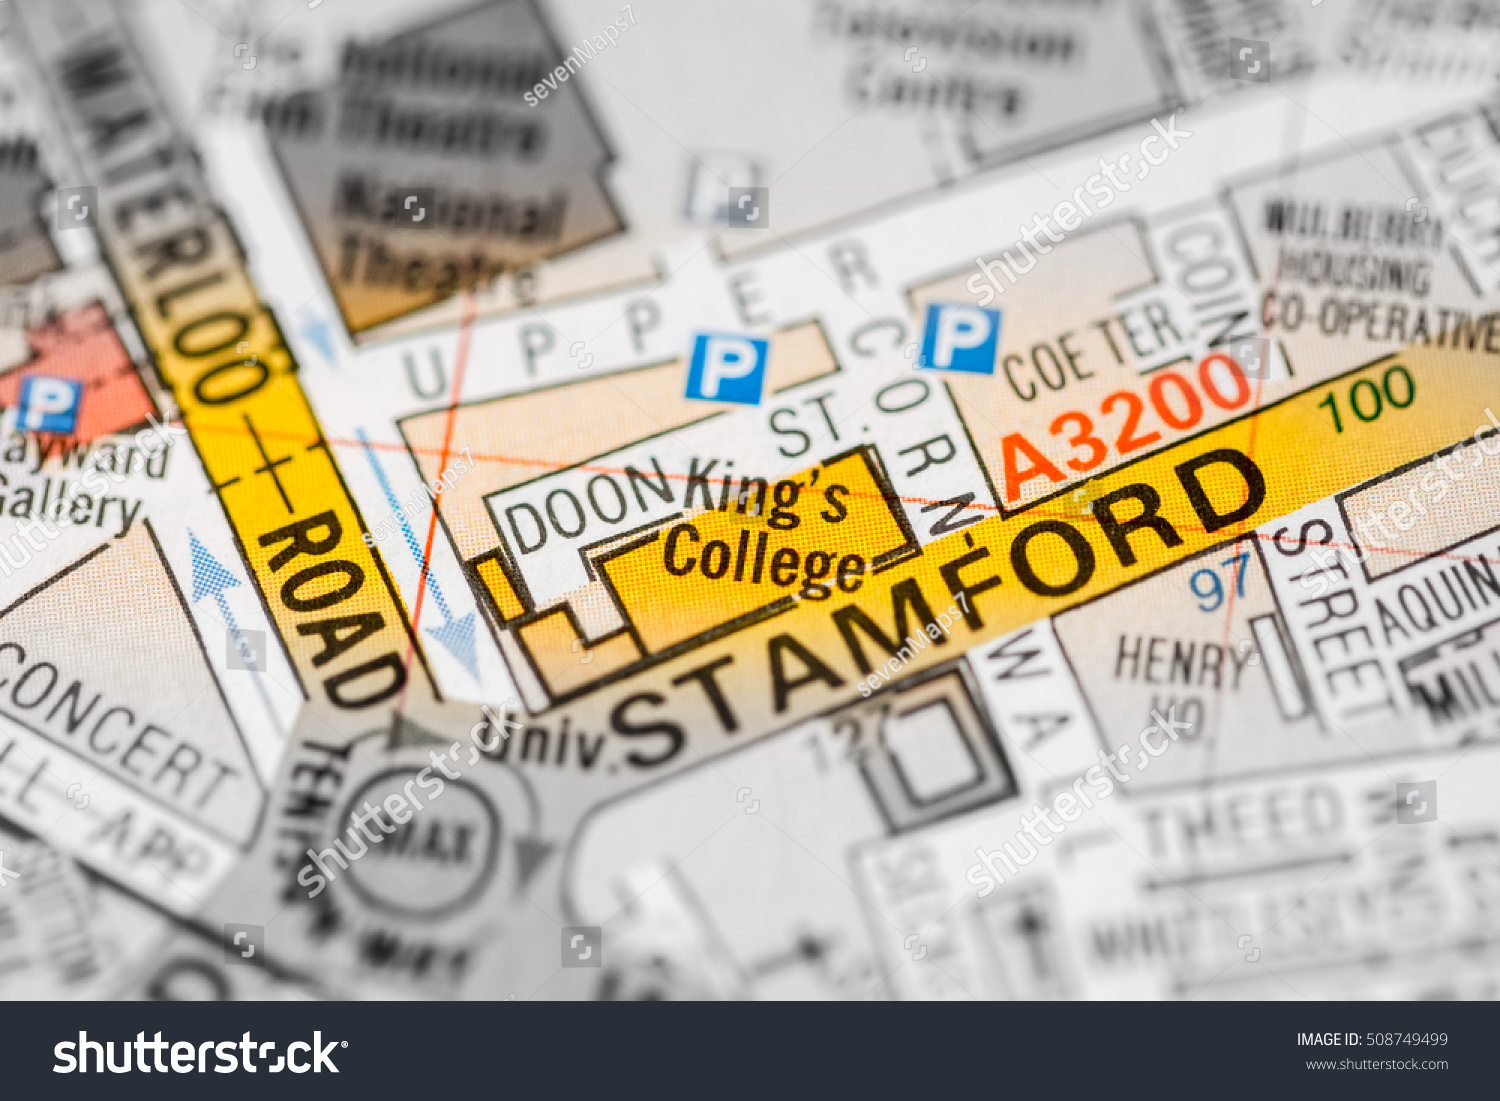 Kings College London Map.Kings College London Uk Map Stock Photo Edit Now 508749499